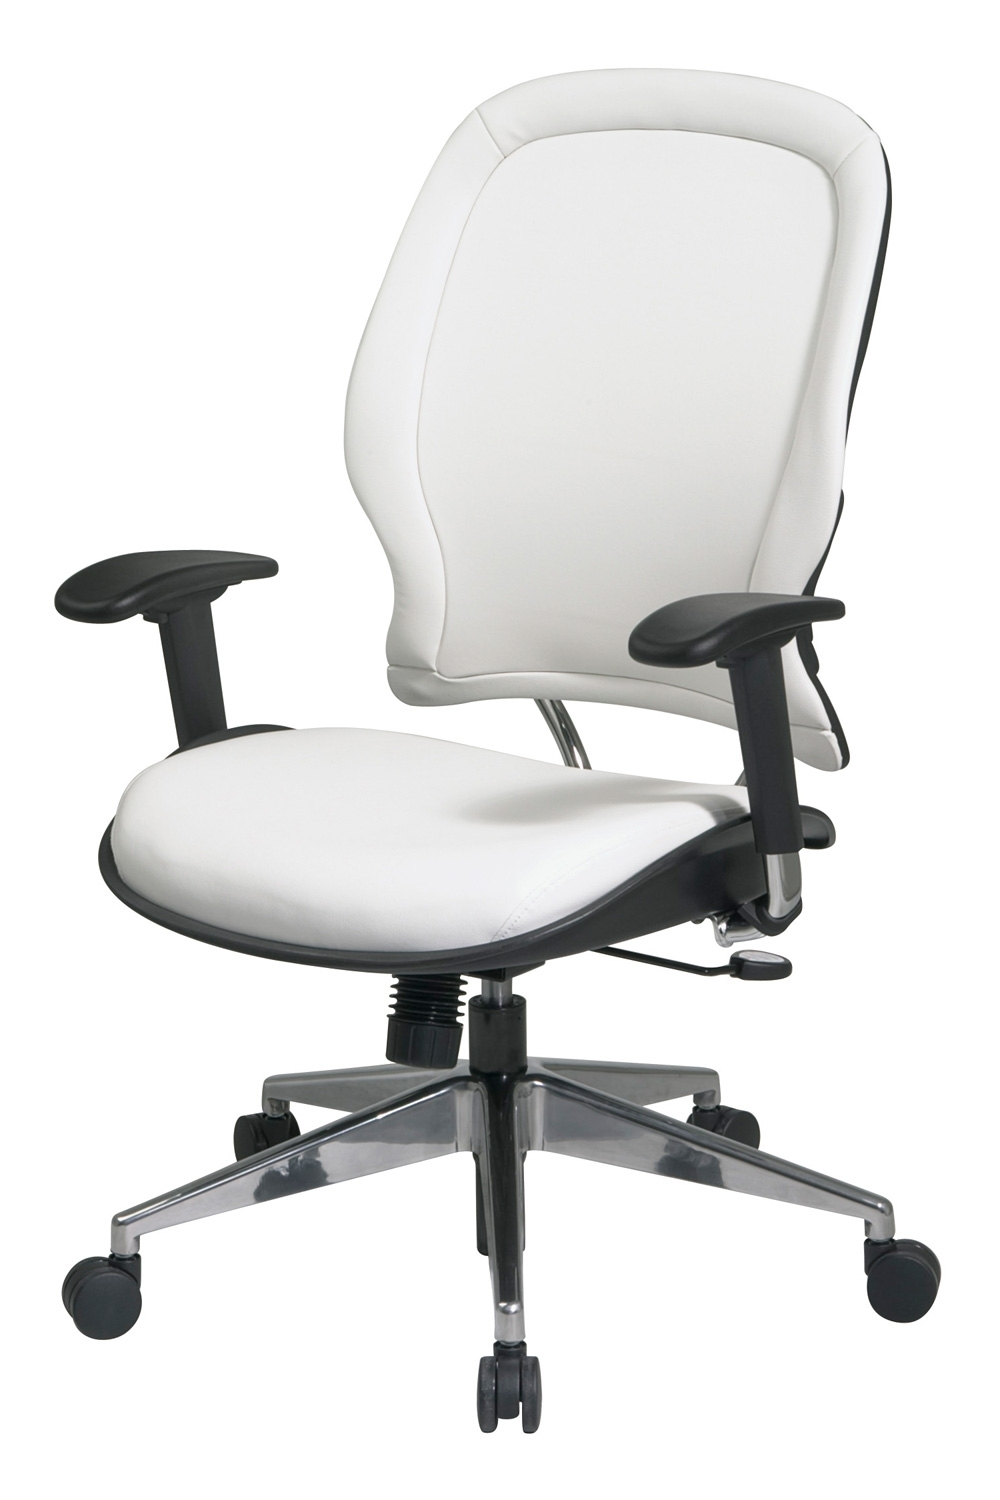 Most Recent 33 Y22P91A8 Office Star – White Vinyl Ergonomic Executive Office Intended For Ergonomic Executive Office Chairs (View 15 of 20)